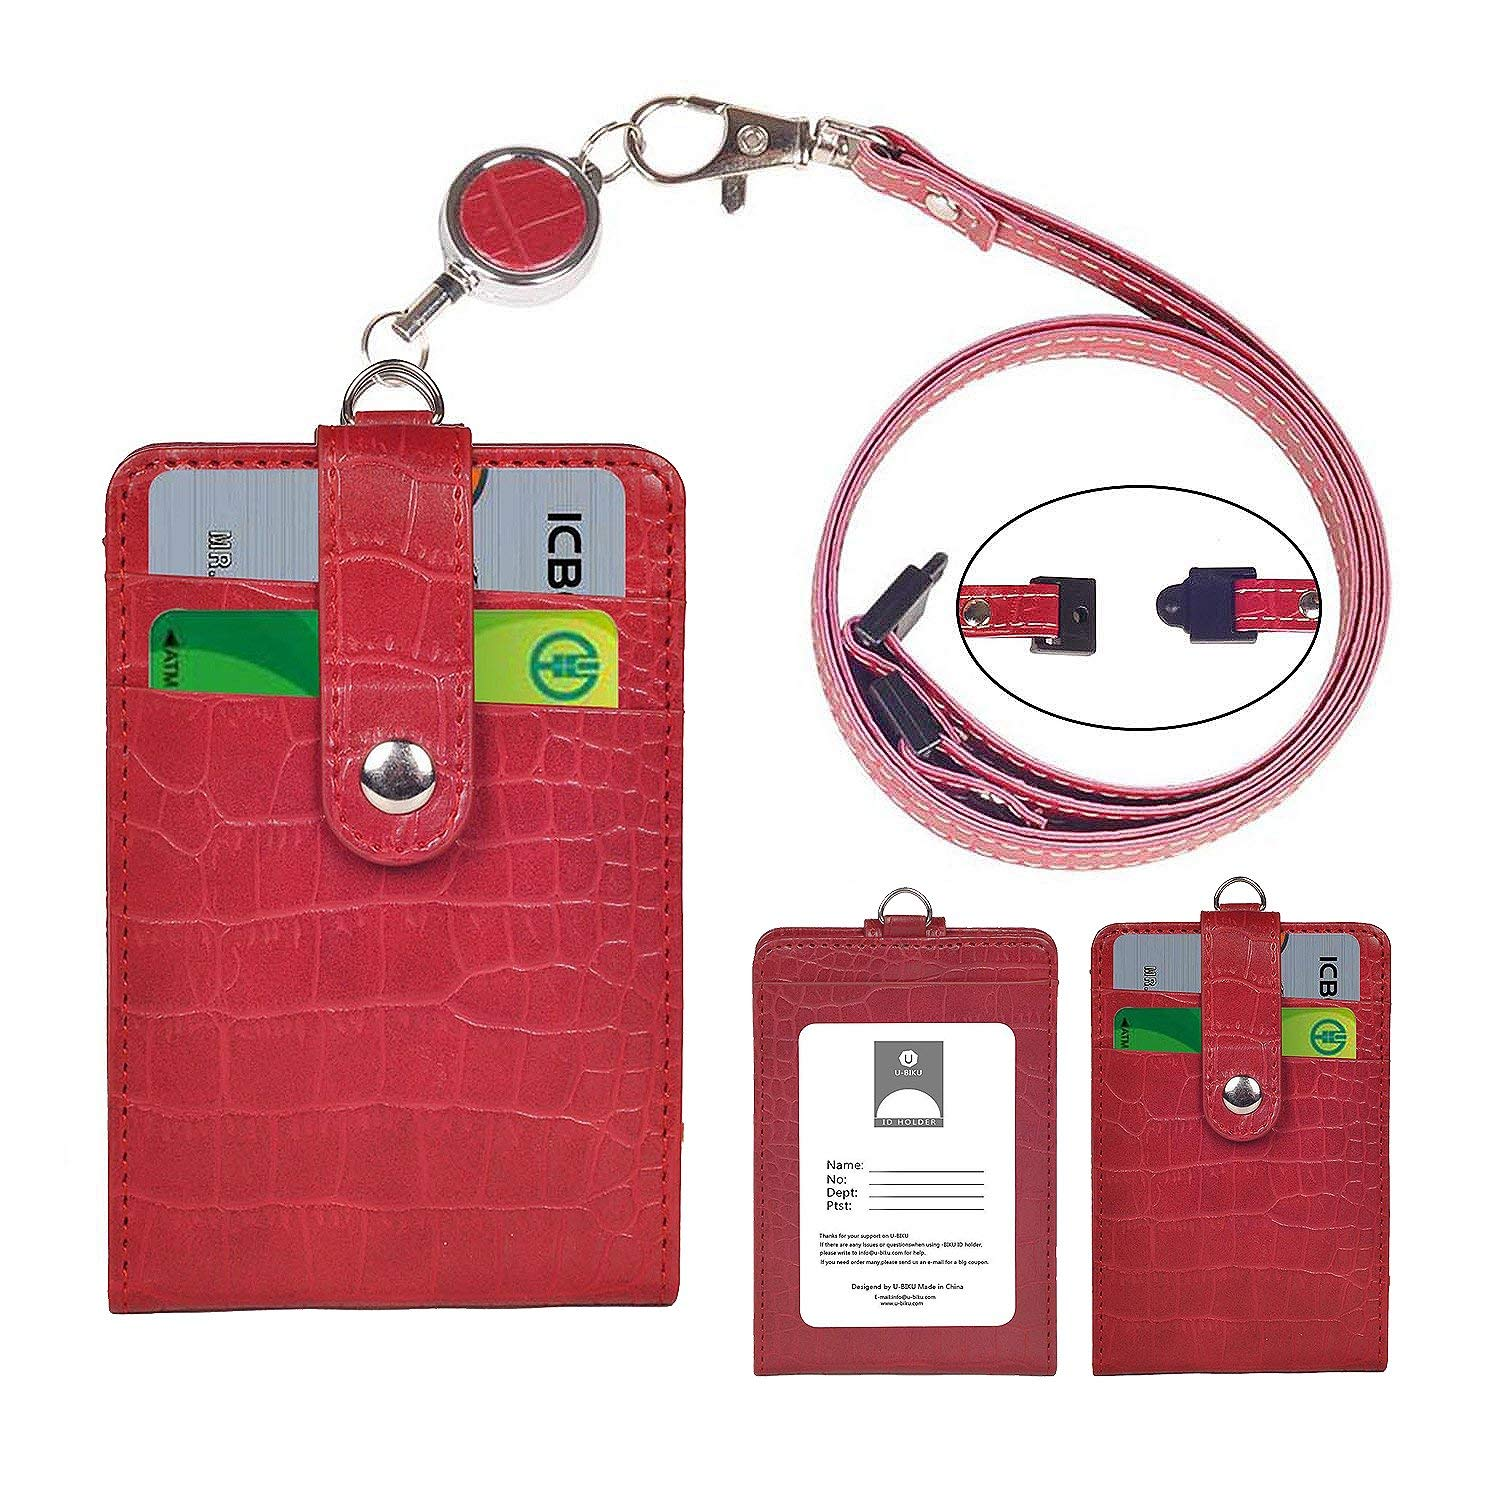 Badge Holder Wallet, U-BIKU PU Leather Alligator Pattern ID Card Holder with 1 ID Window and 6 Card Slot, 1PC Retractable Reel,1PC Neck Lanyard-Vertical (Red)